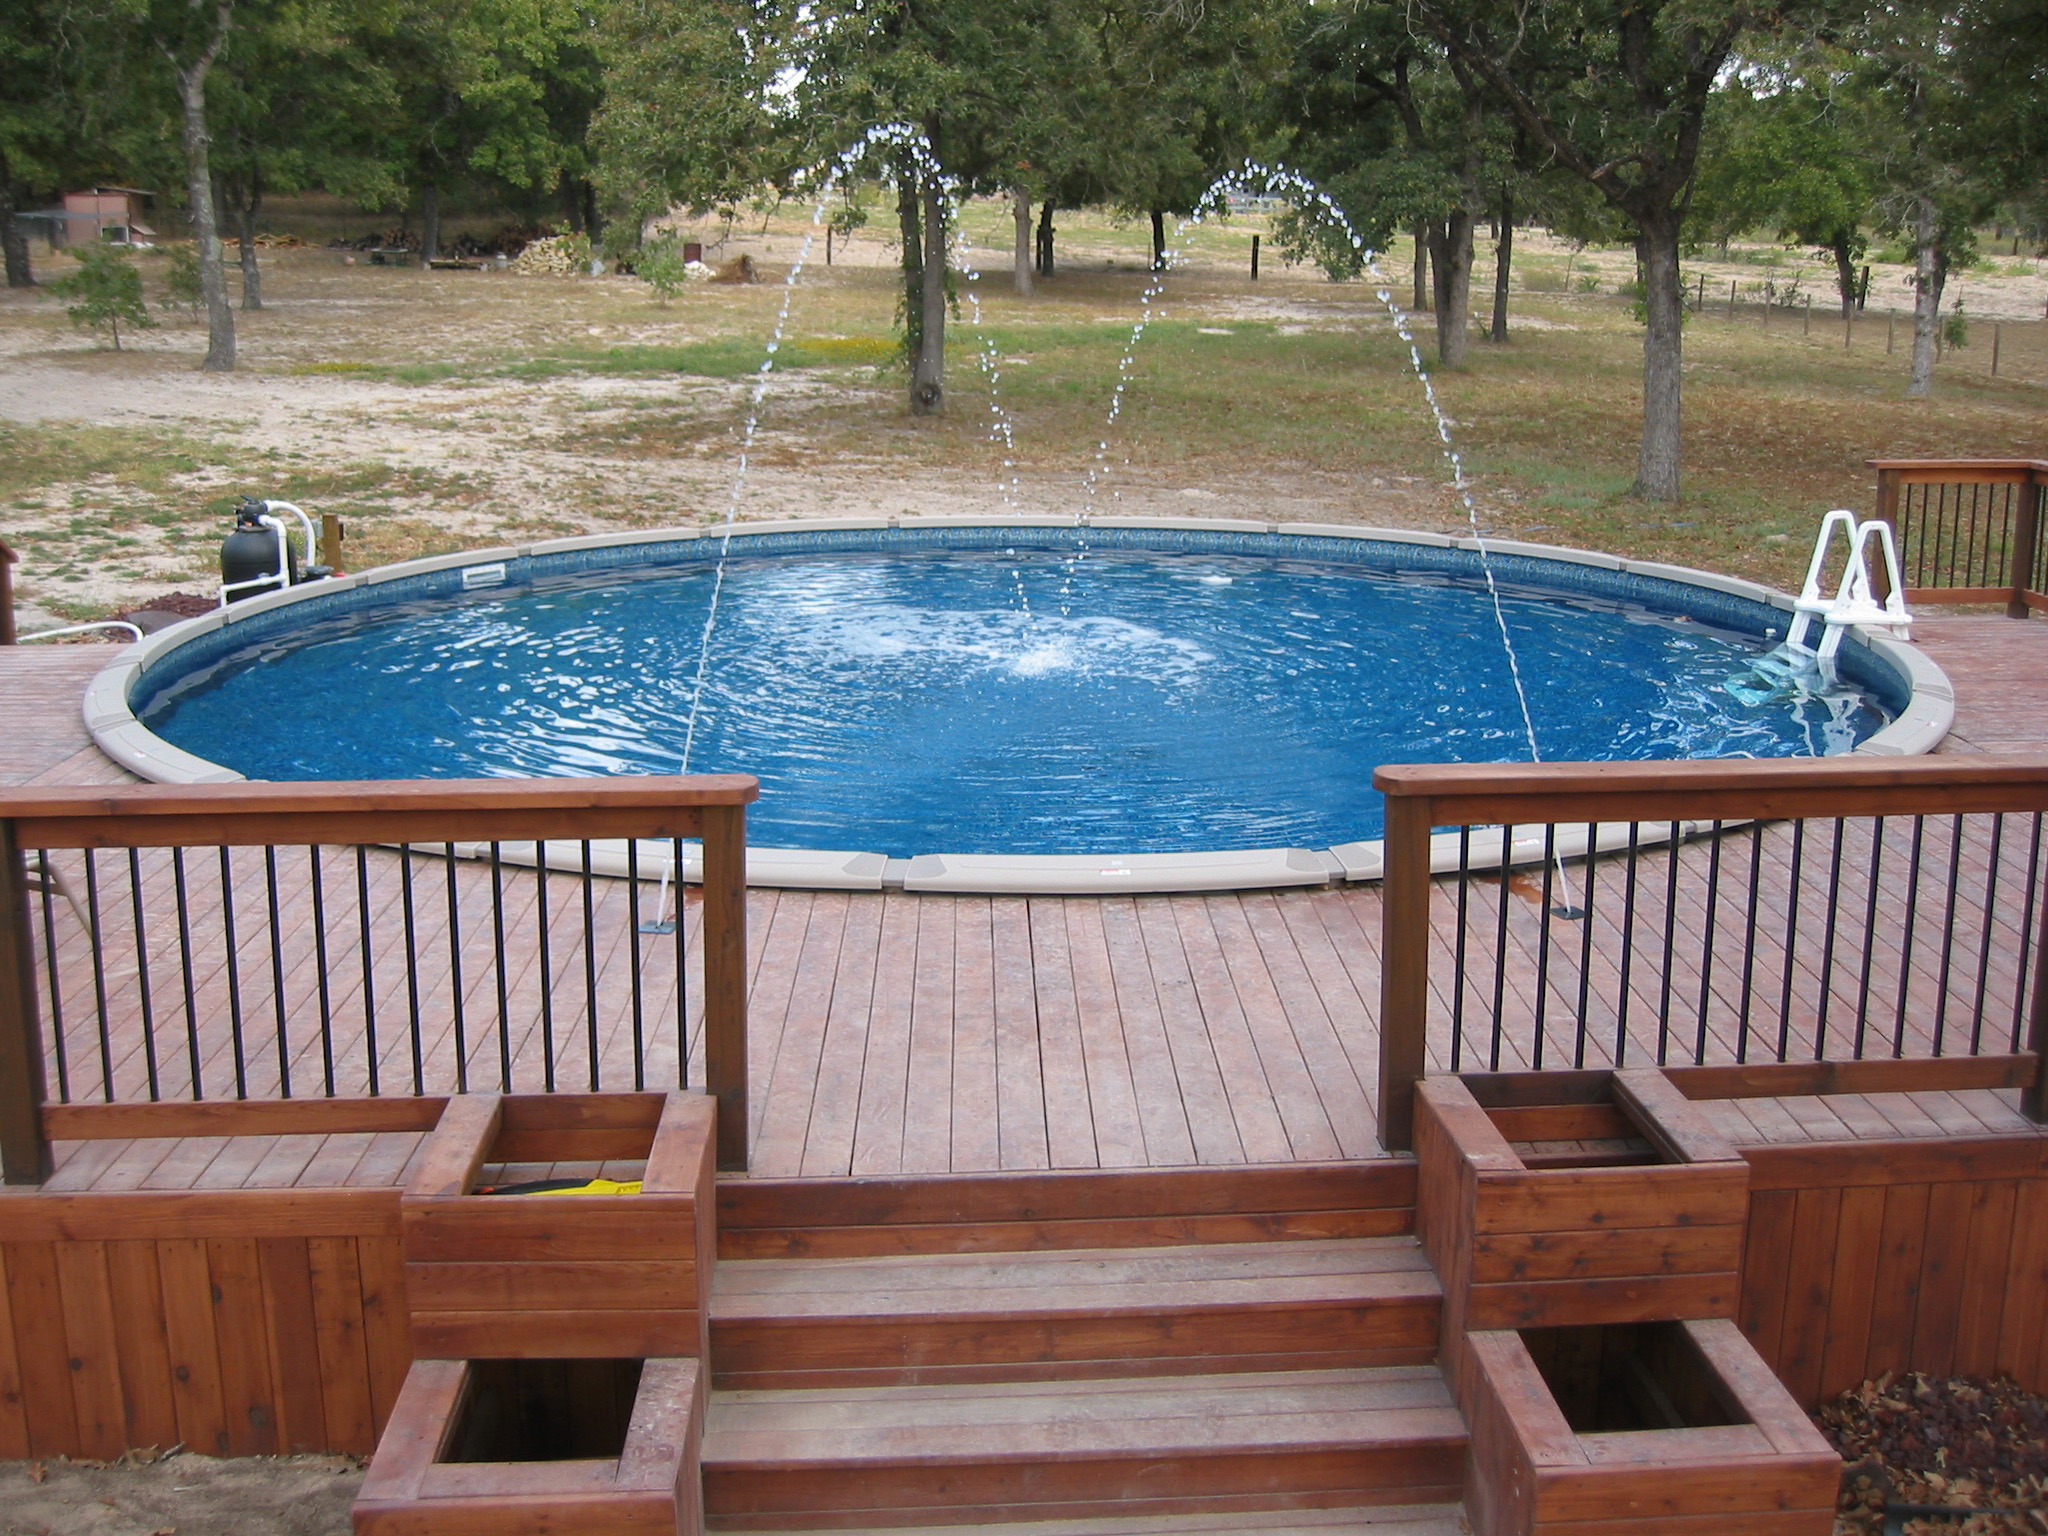 large round above ground pool wilson county 30 ft round flickr photo sharing. Black Bedroom Furniture Sets. Home Design Ideas